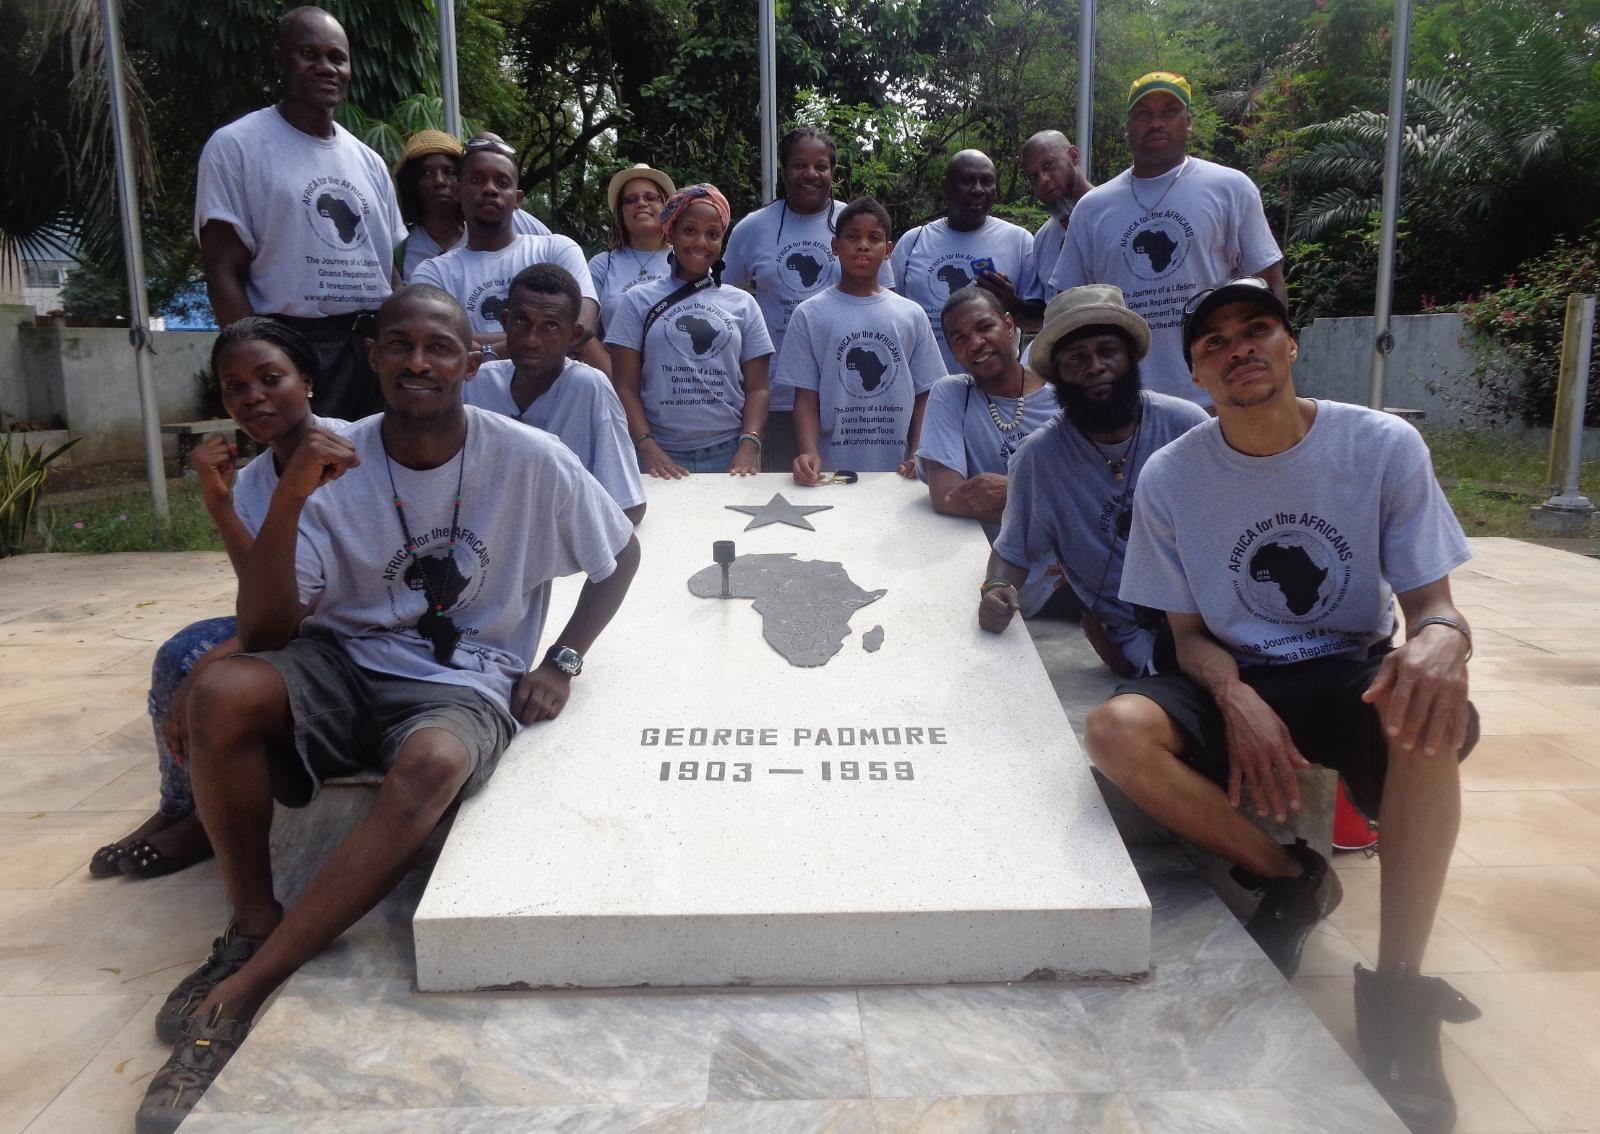 Ghana Repatriation & Investment Tour Group Oct 2014 - See more at: http://africafortheafricans.org/#sthash.BFqW93KD.dpuf